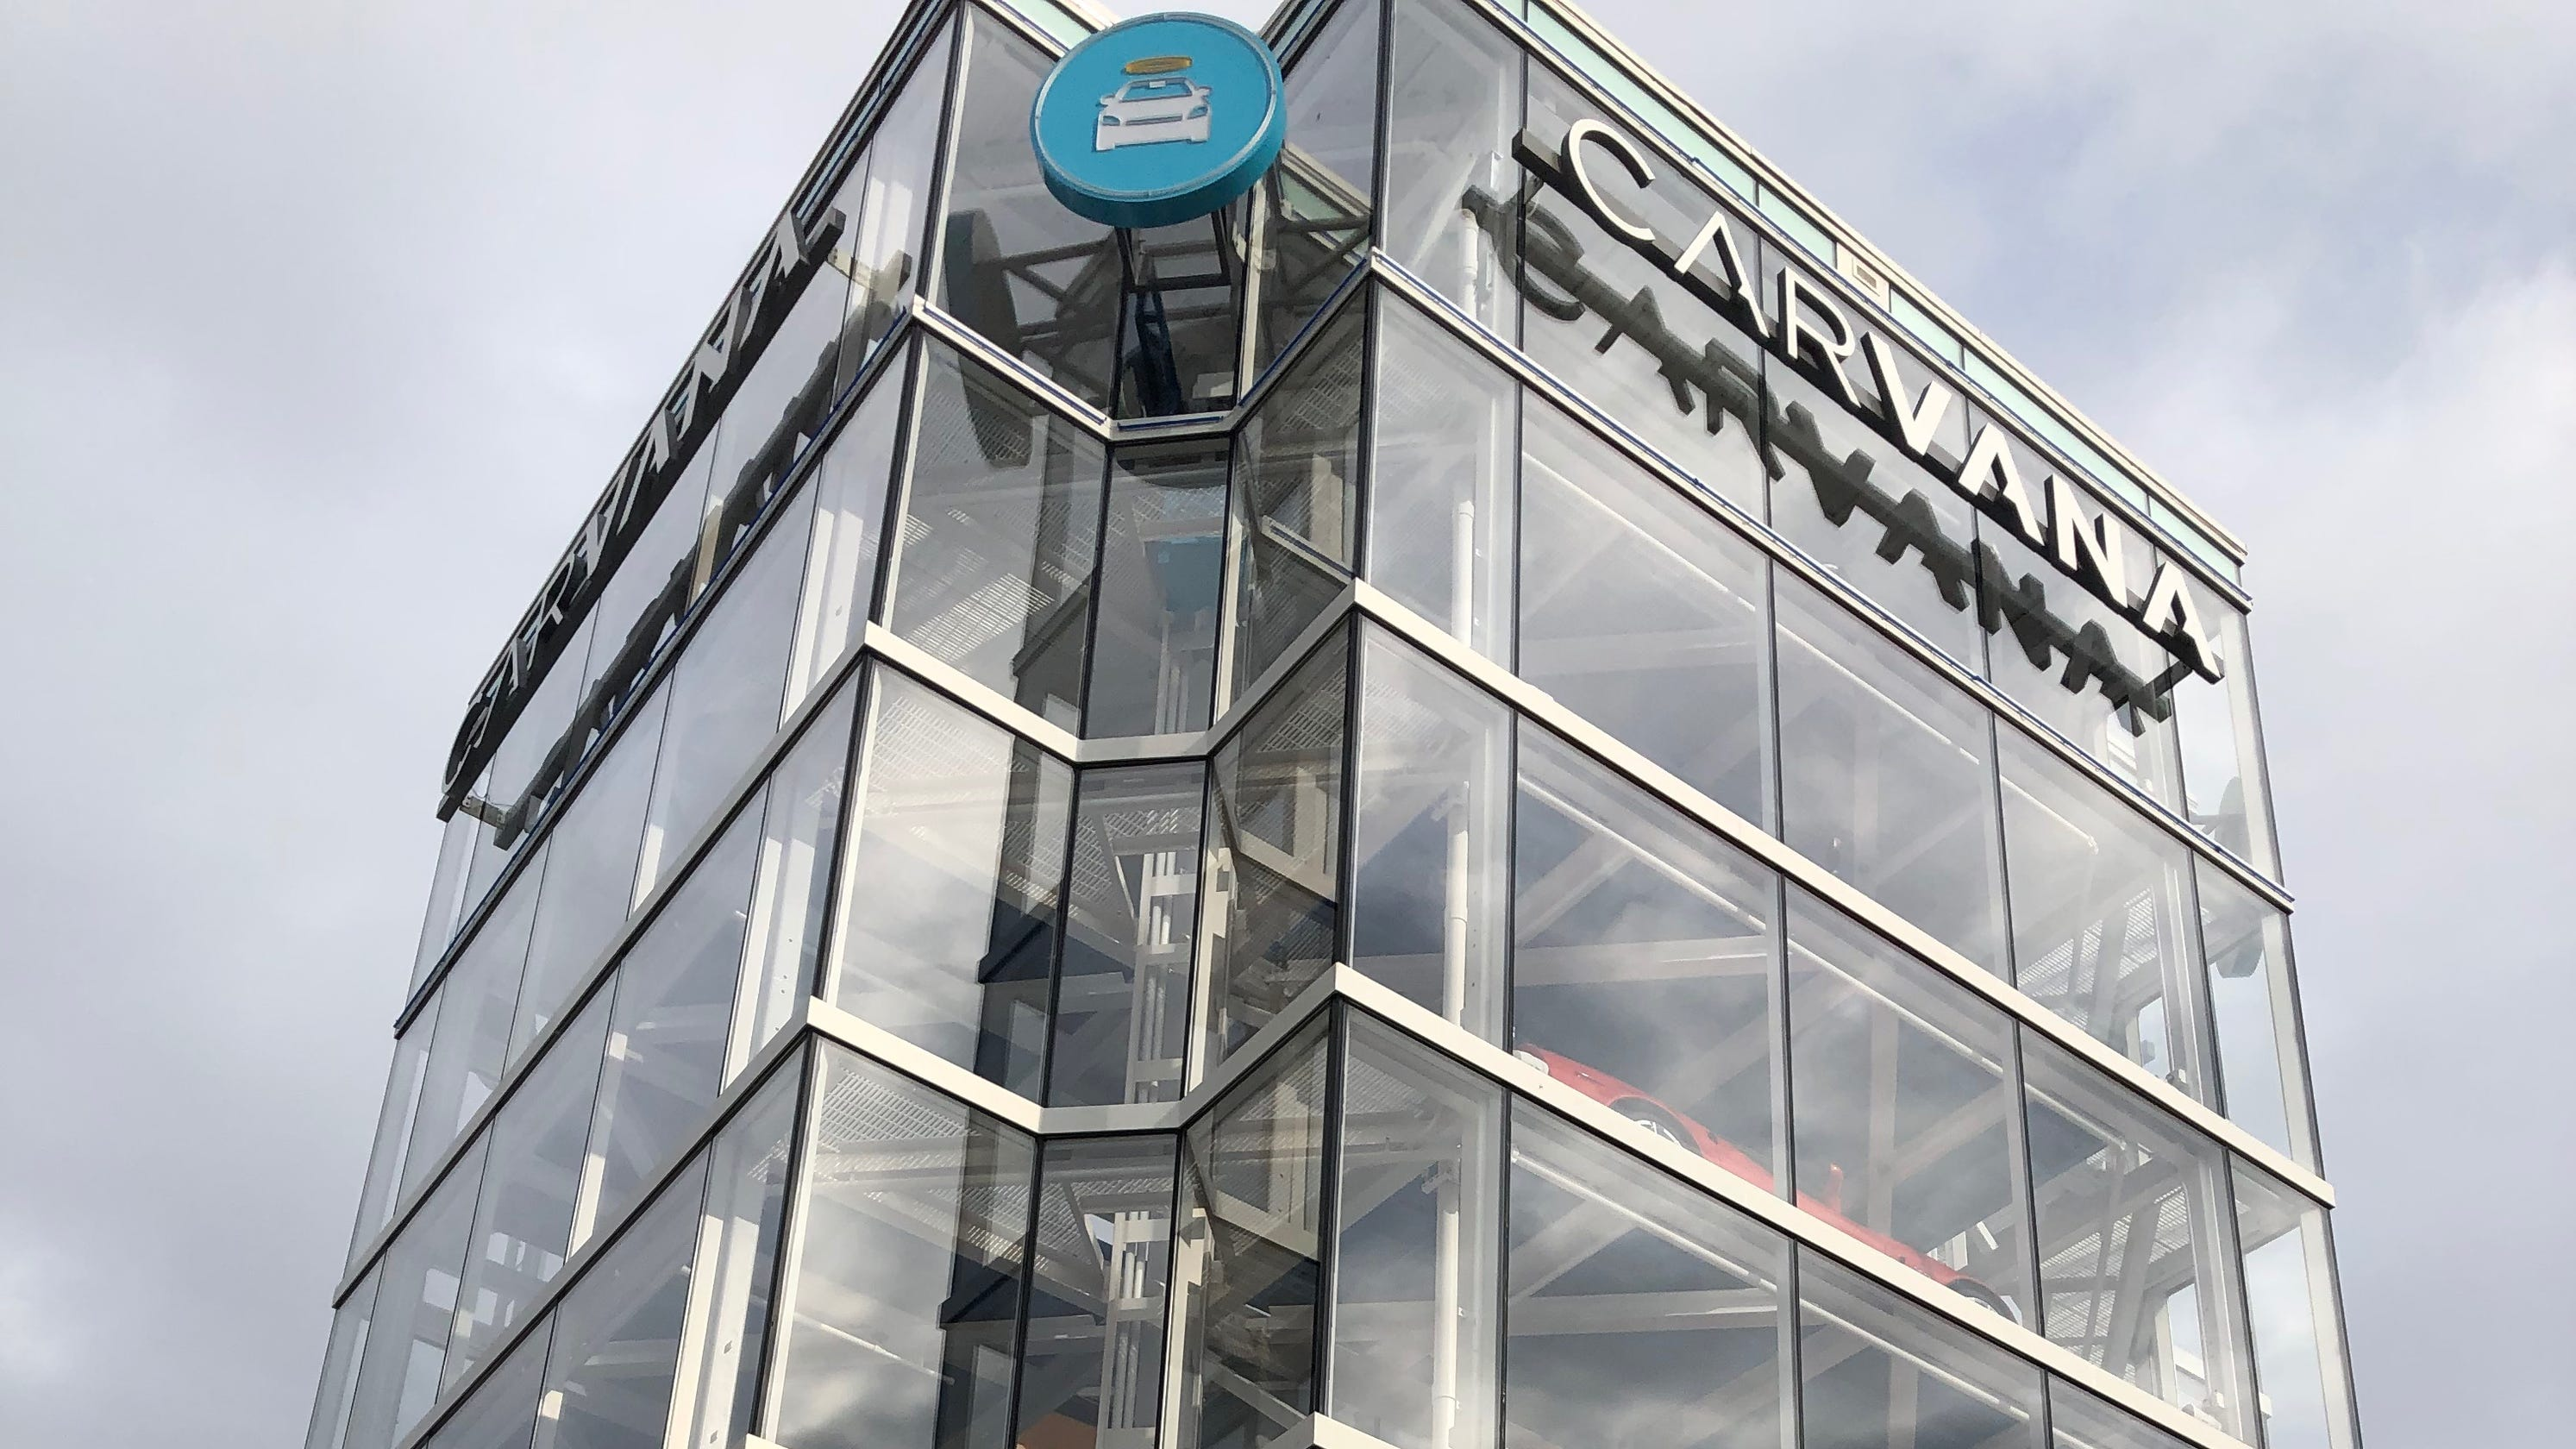 Carvana car vending machine: Here's how it works